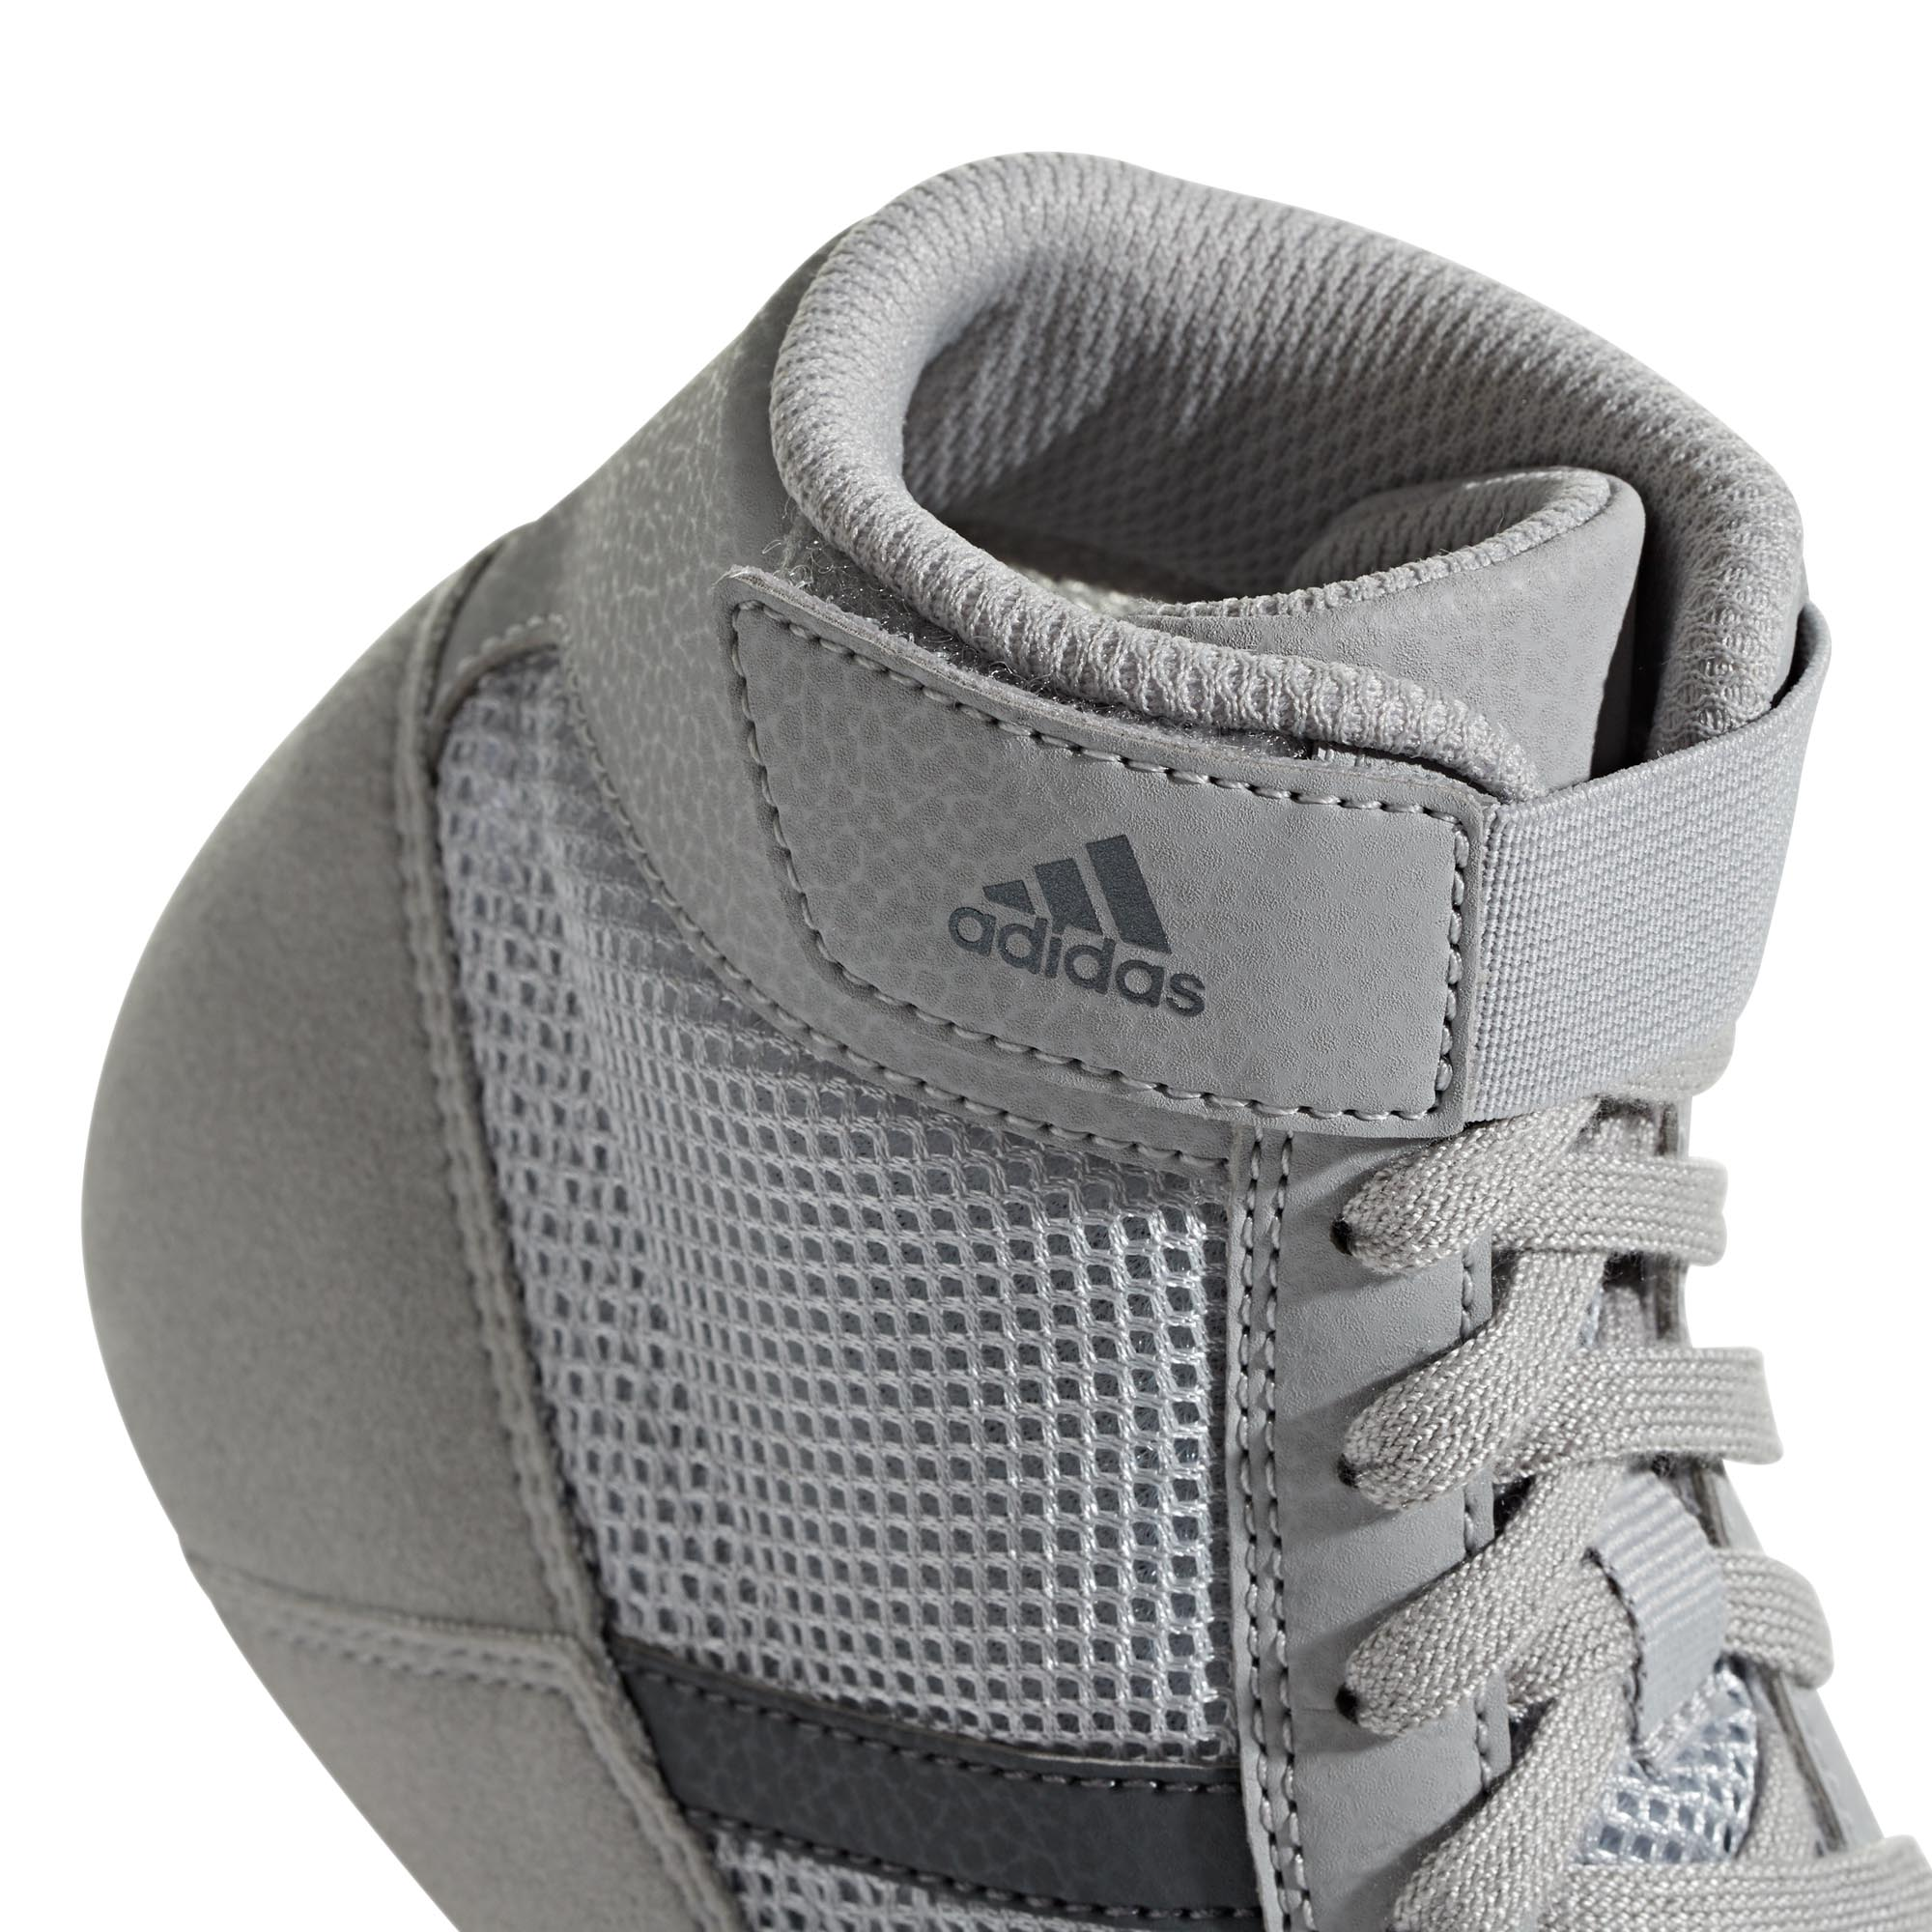 miniature 8 - Adidas-Havoc-Enfants-Junior-Wrestling-Trainer-Shoe-Boot-Gris